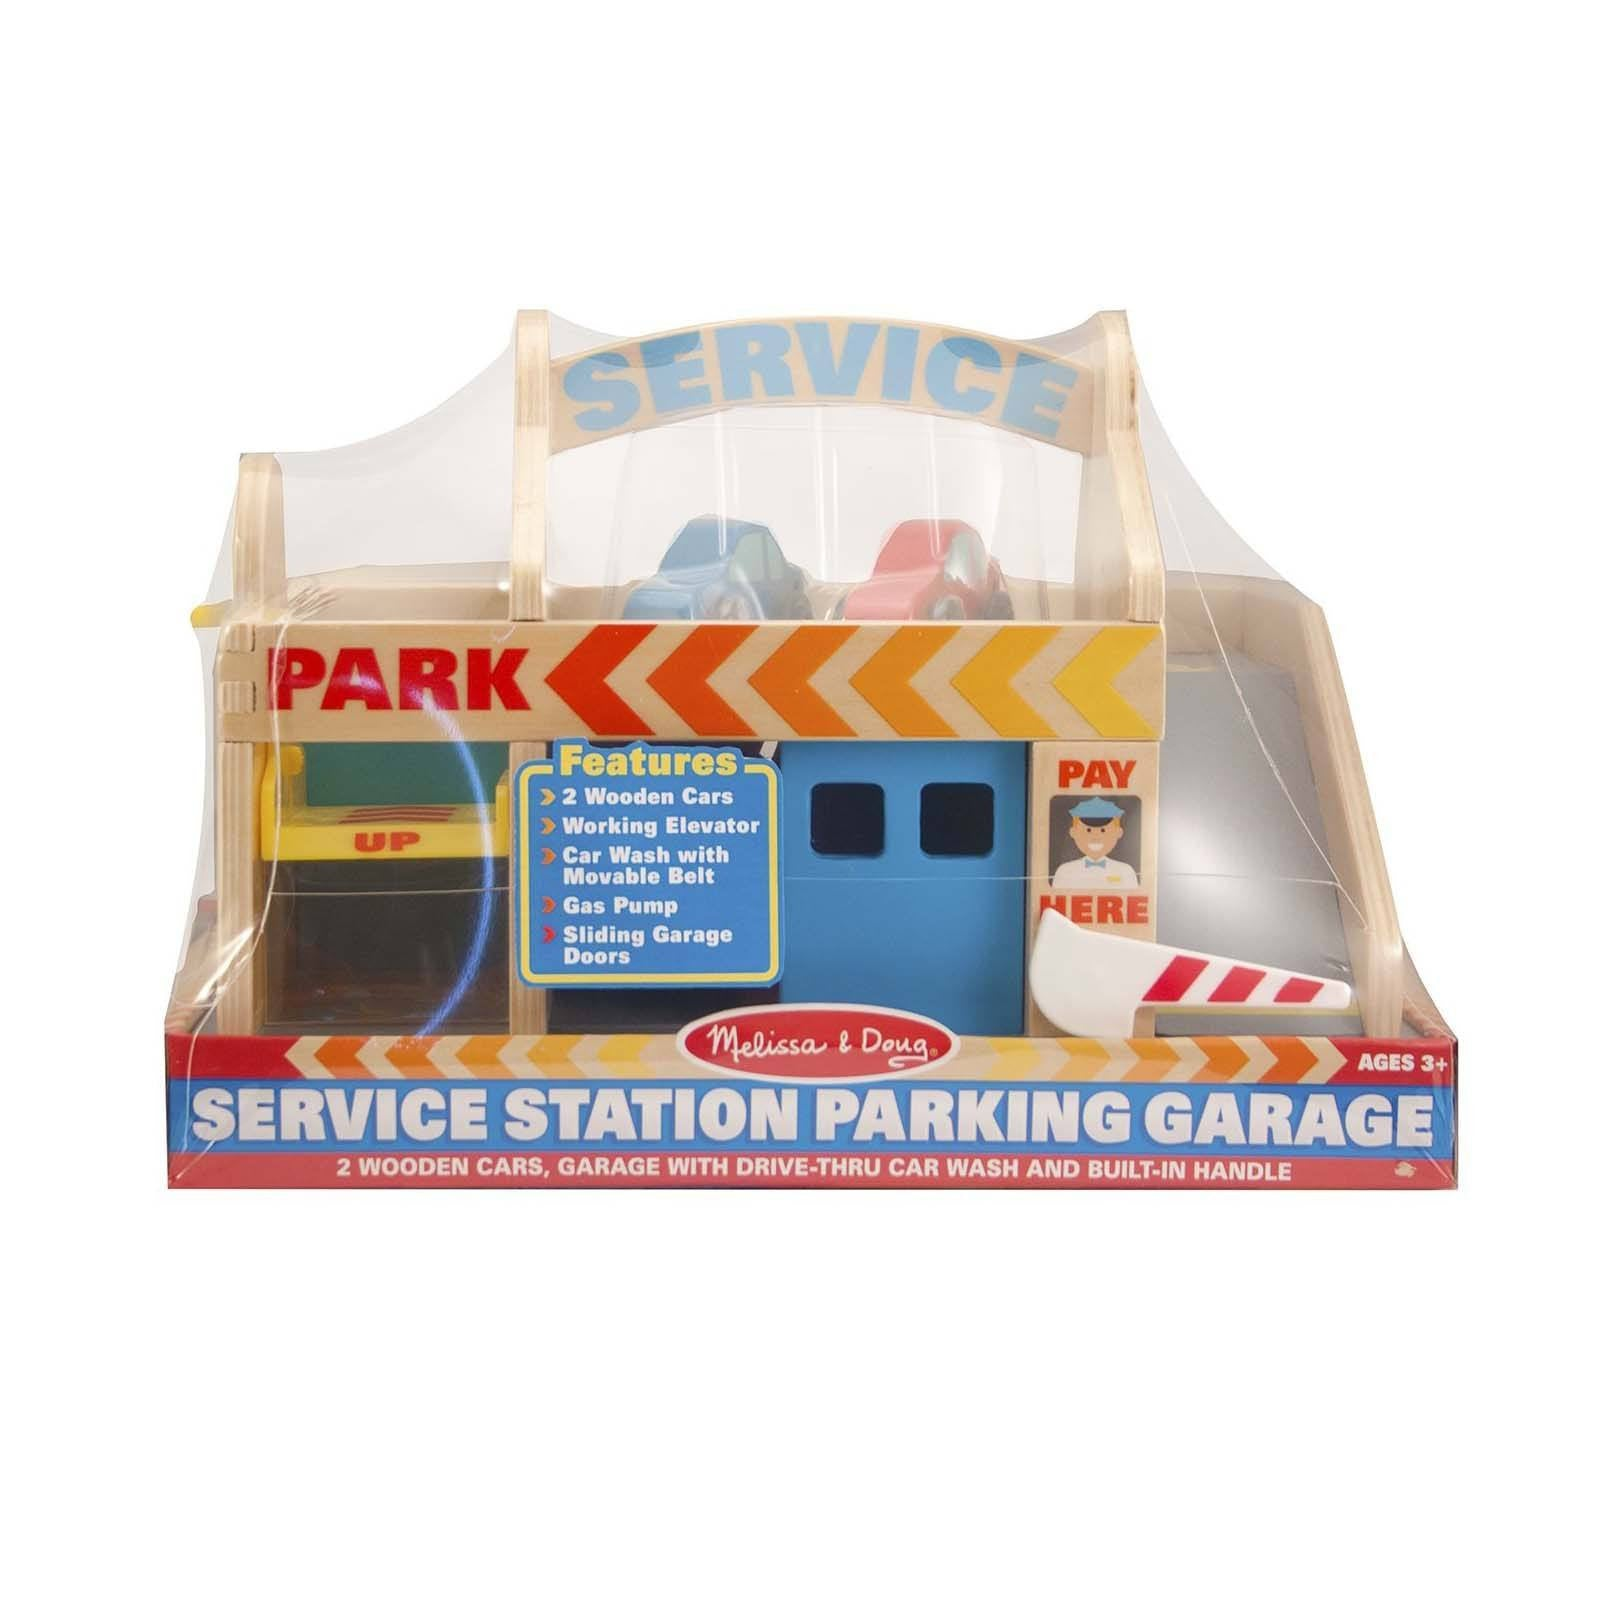 Wooden toys classic car wash garage kids car play sets radar melissa and doug wooden service station parking garage play set rubansaba